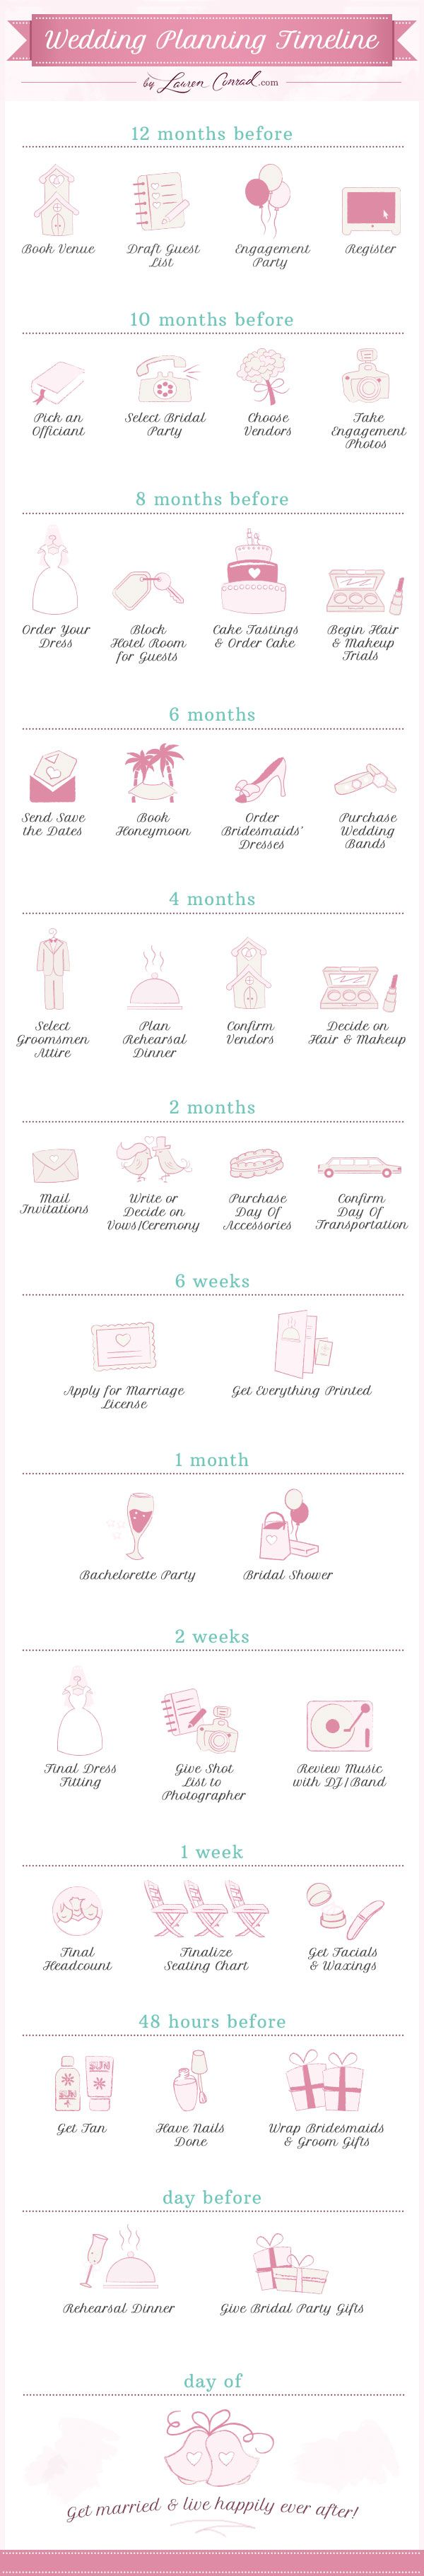 infographic-wedding-planning-timeline